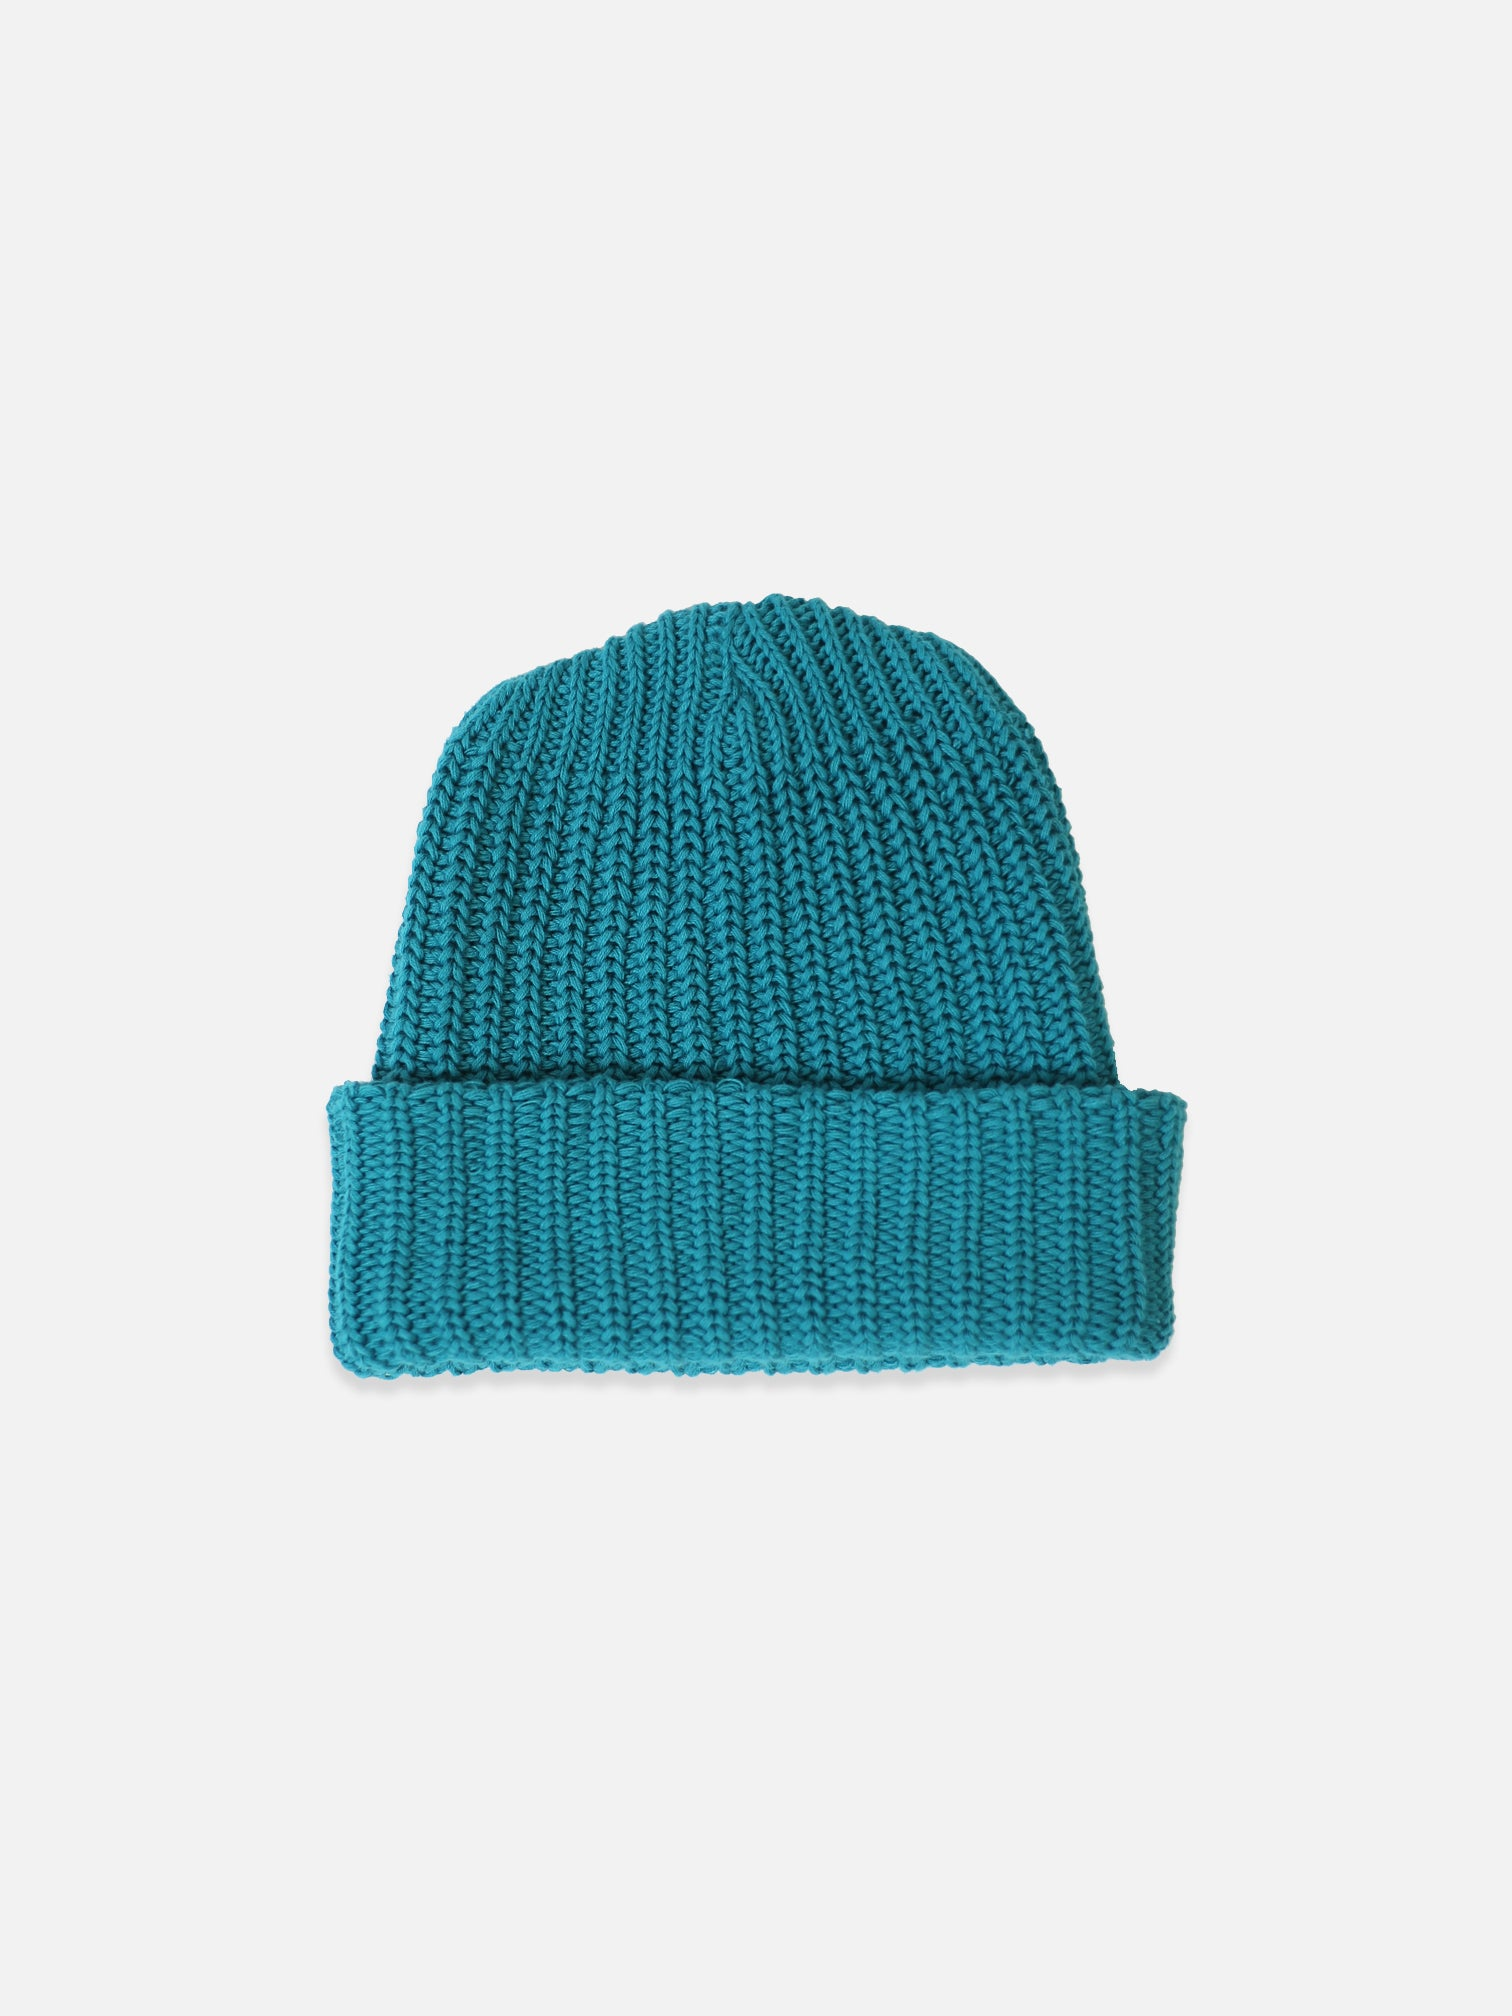 Heavy Knit Beanie - Turquoise